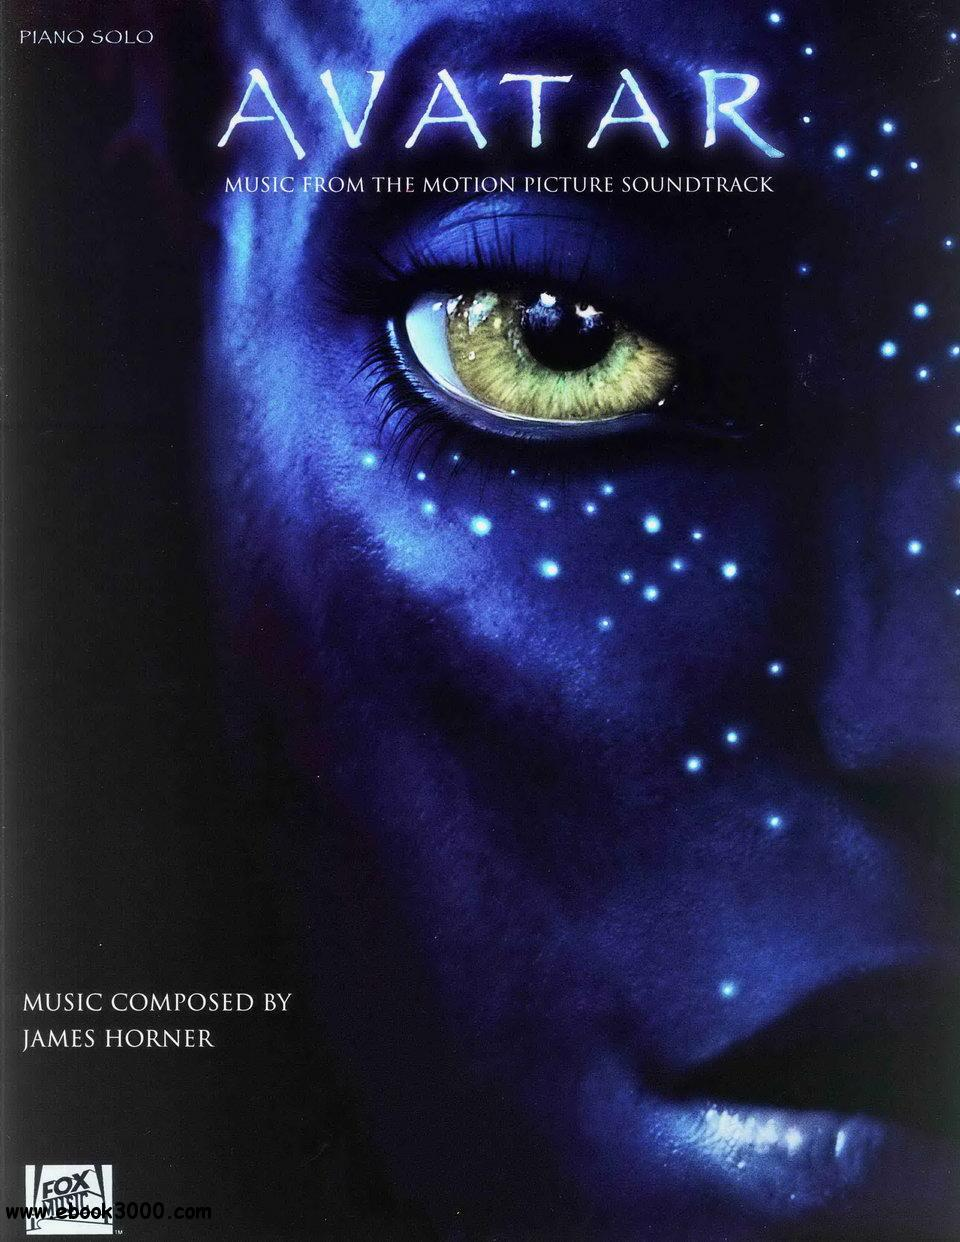 Avatar Music from the Motion Picture Soundtrack free download